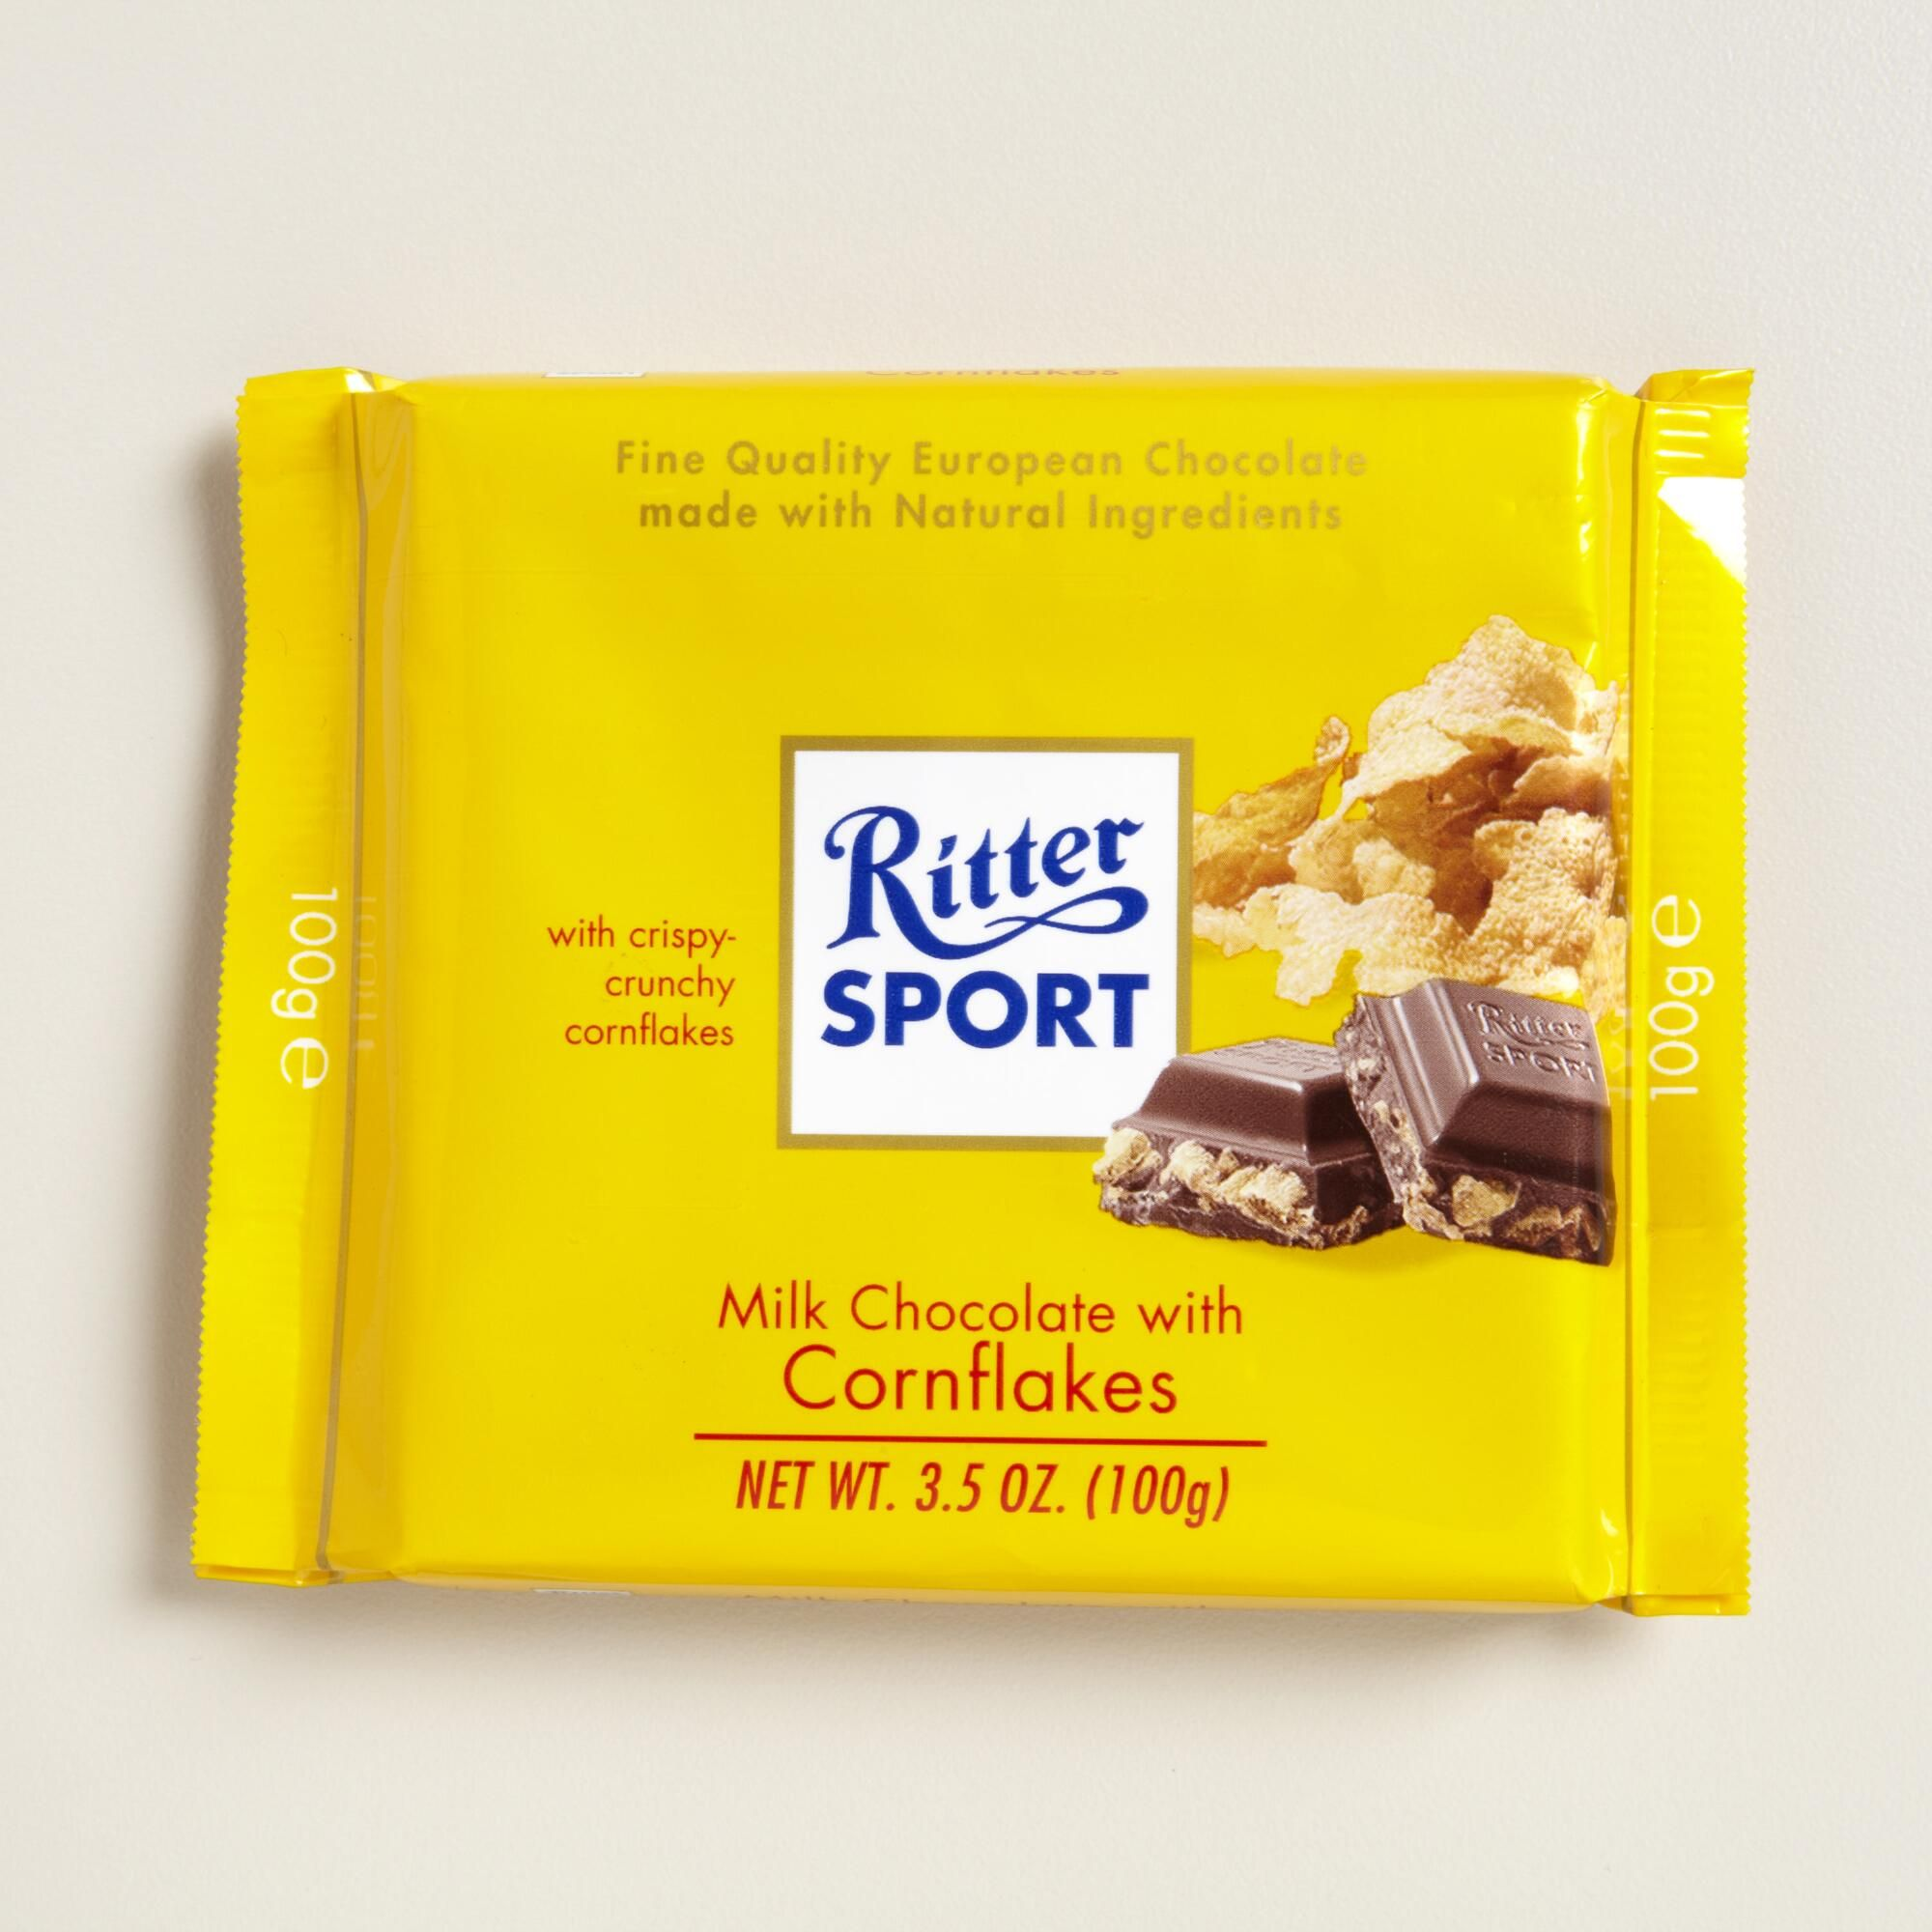 Ritter Sport Milk Chocolate with Cornflakes, Set of 10 by